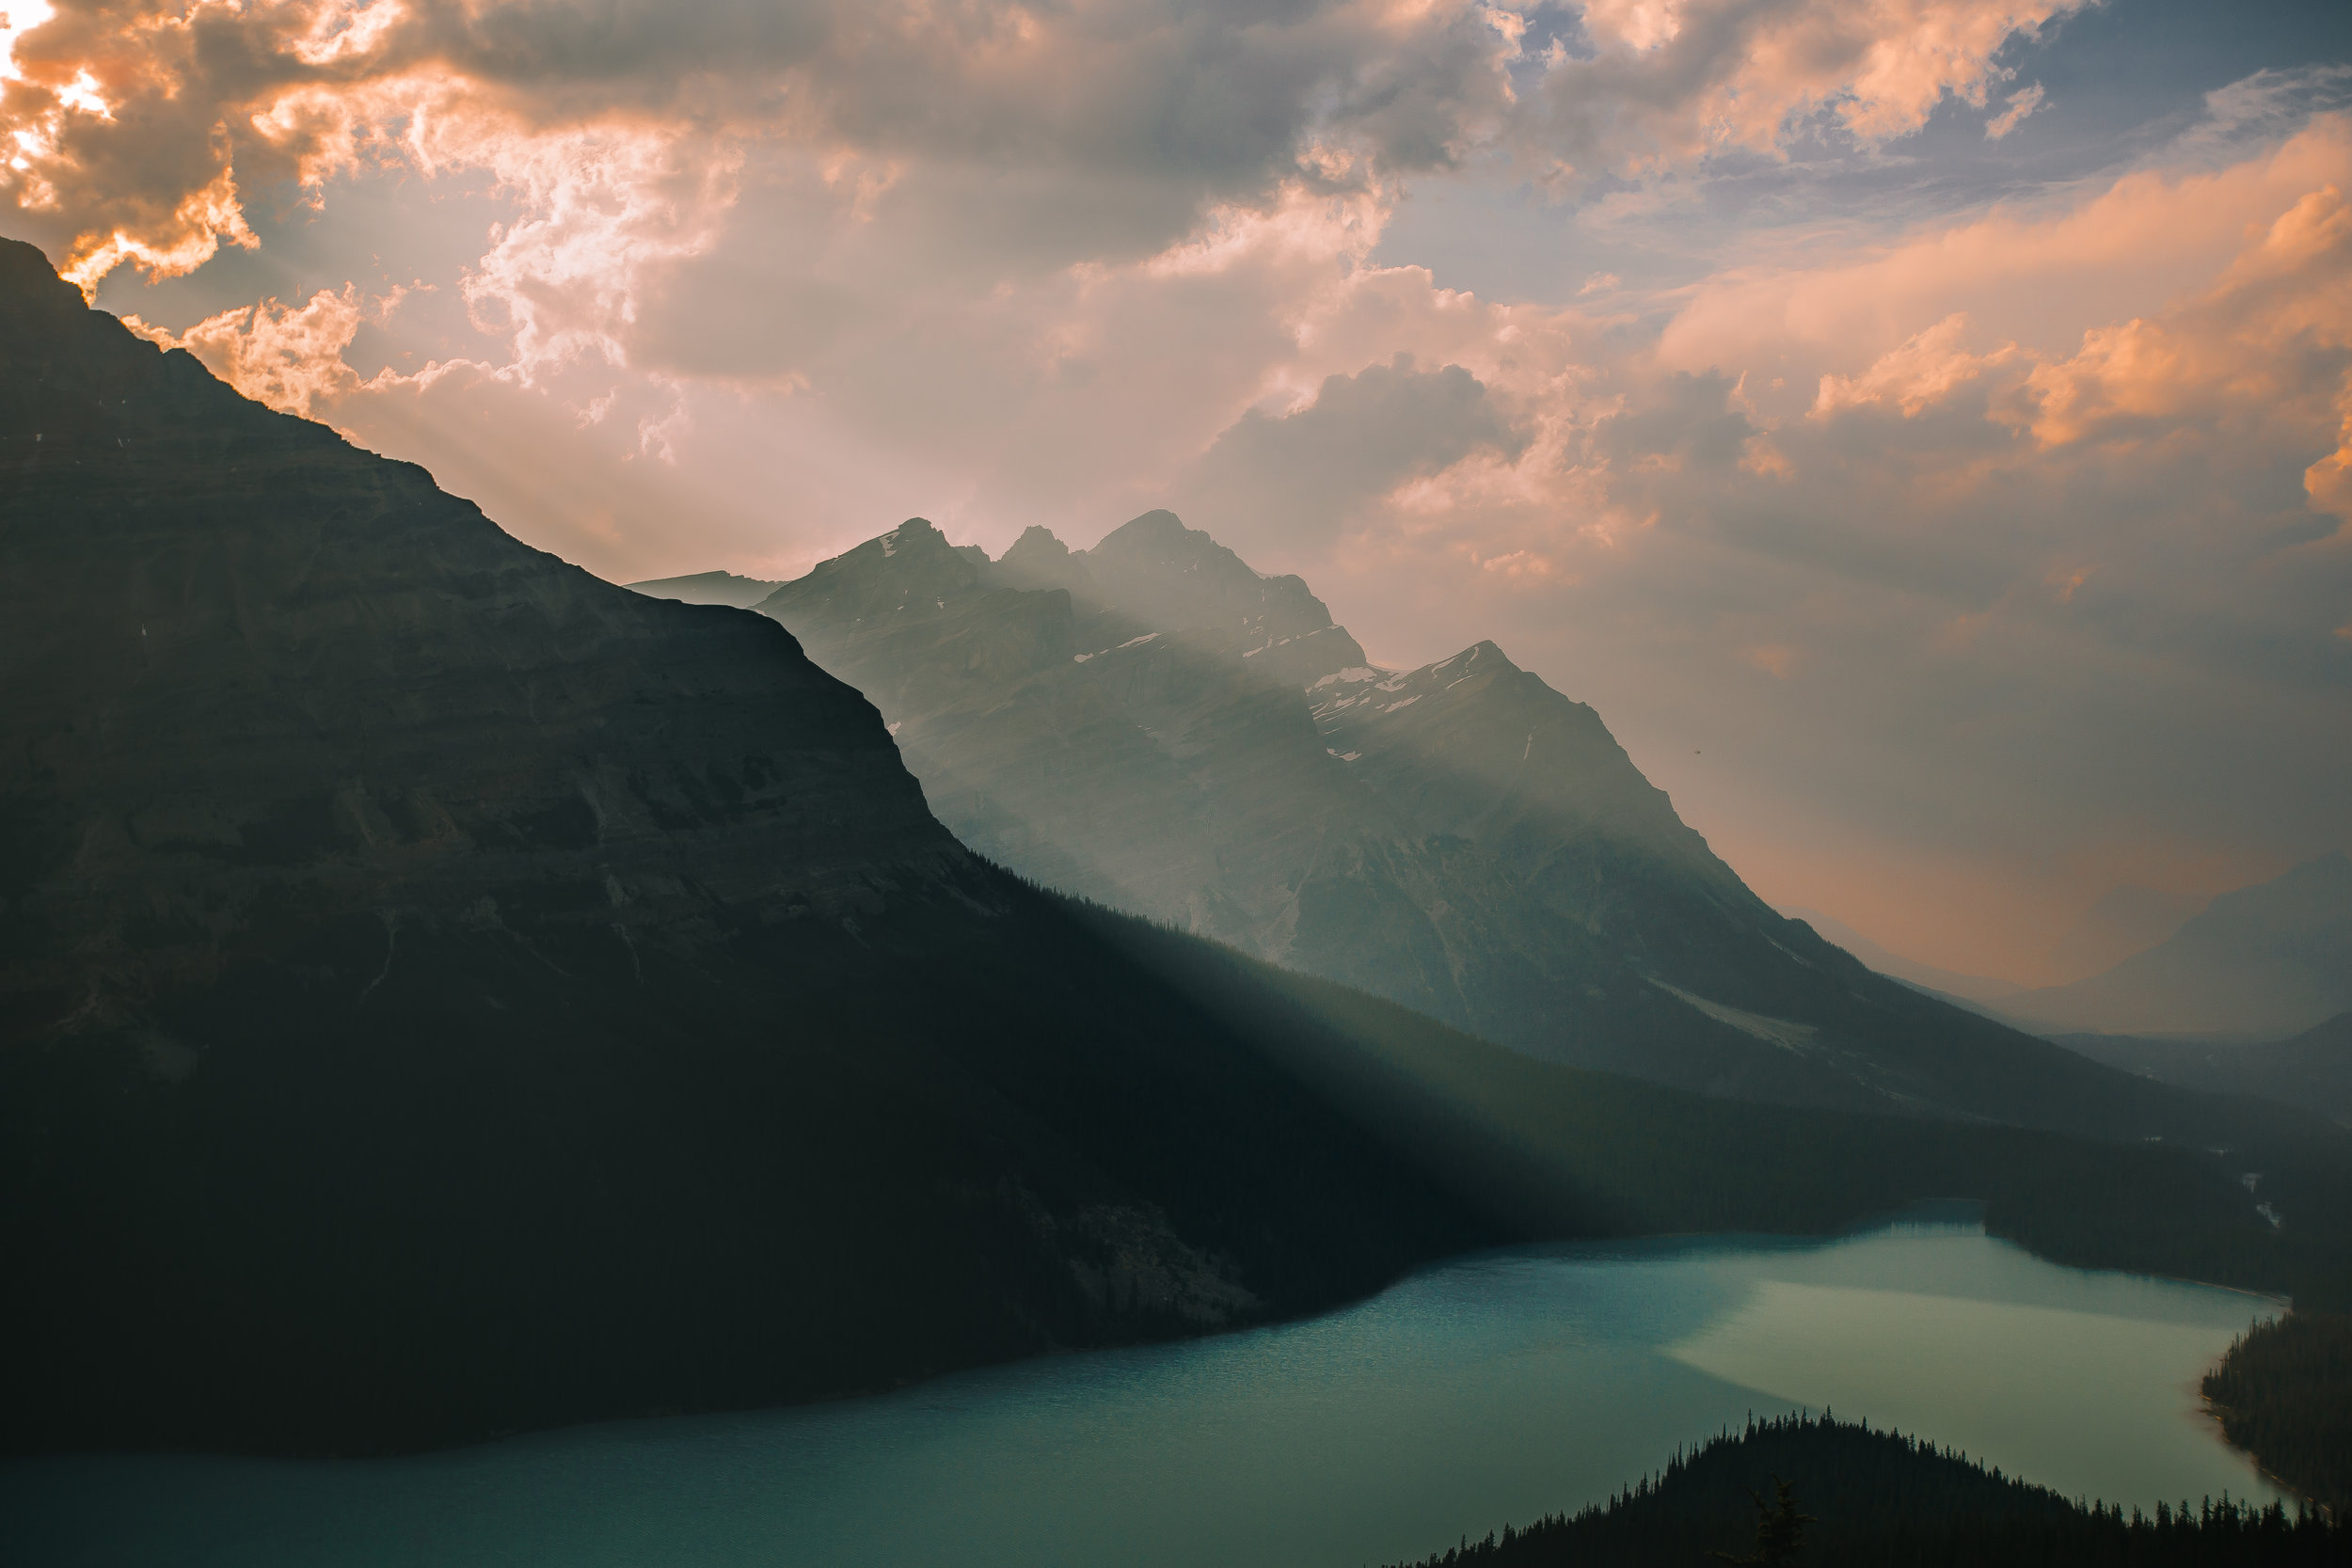 nicole-daacke-photography-banff-national-park-yoho-jasper-canada-parks-alberta-landscape-photographer-canadian-rockies-elopement-photographer-kananaskis-landscape-photos-5113.jpg